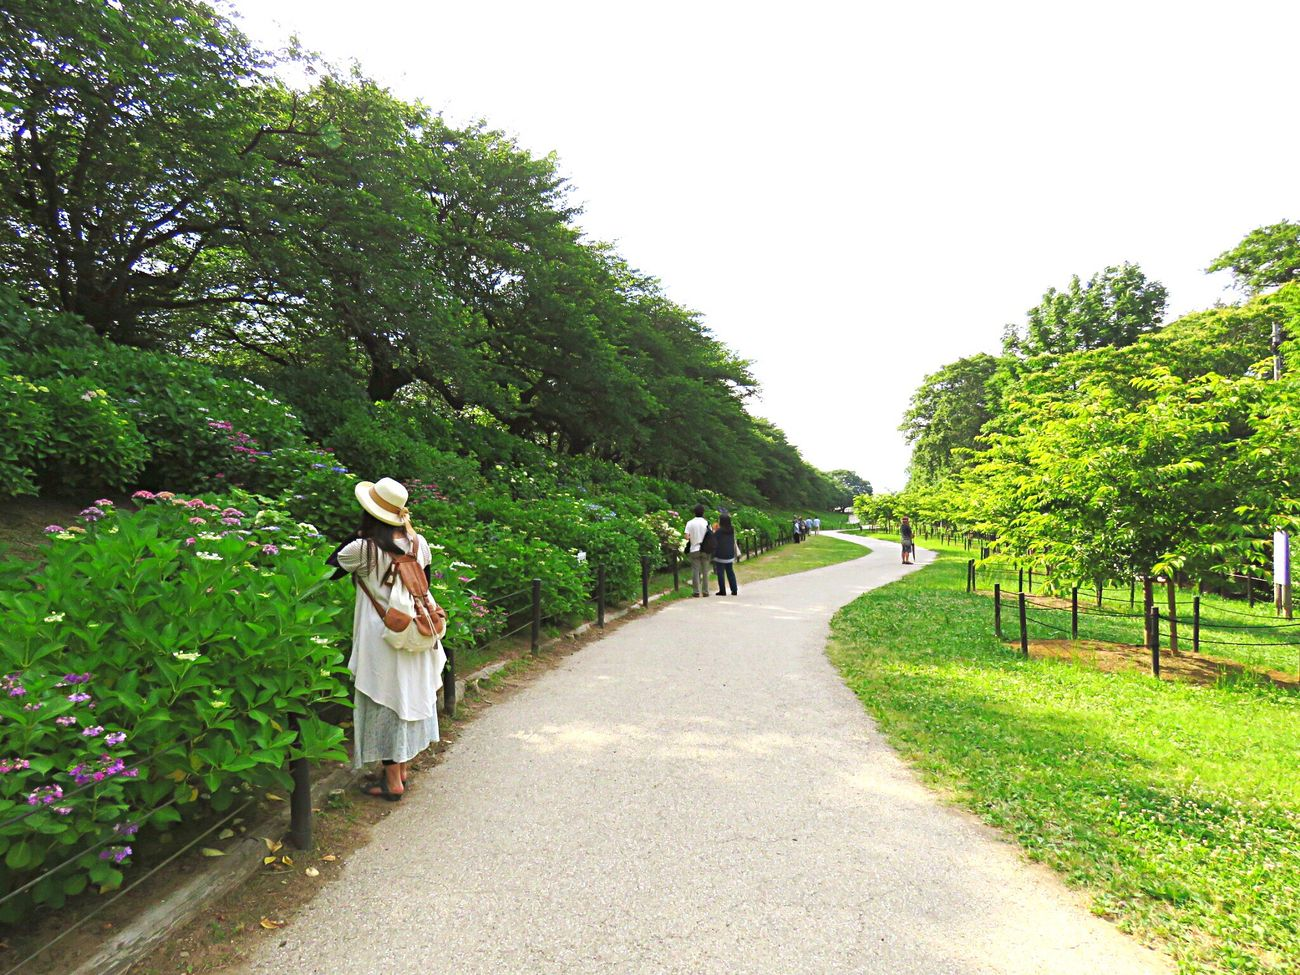 Tree Walking Day Full Length Outdoors Only Women Adult People Togetherness Growth Women Grass Nature Young Women Sky 紫陽花 Rural Scene Agriculture Adults Only Friendship Young Adult 権現堂 紫陽花はまだまだの咲き具合…またリベンジに行かなきゃ!